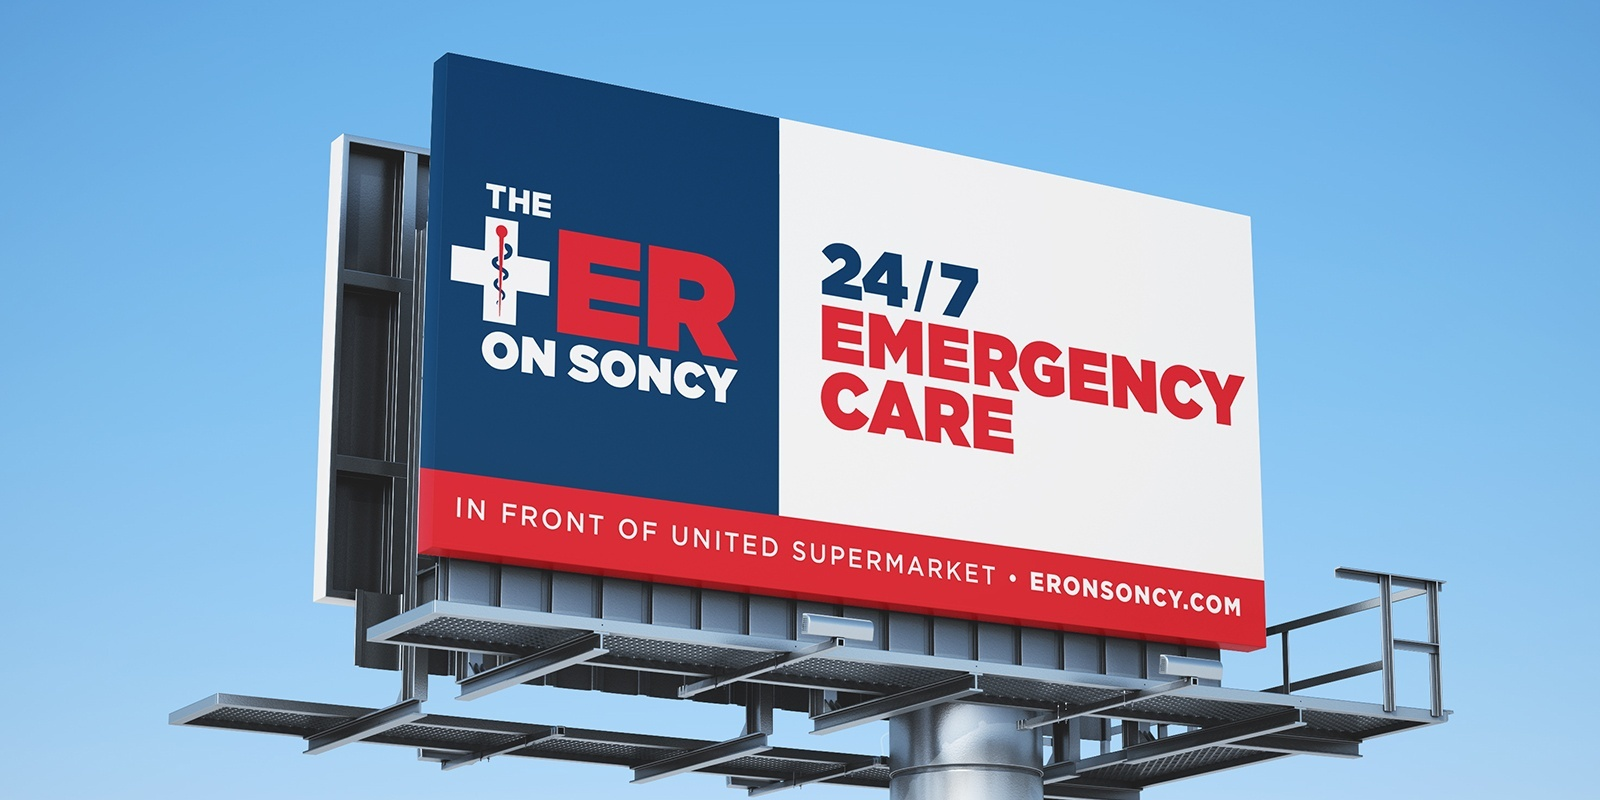 The ER on Soncy